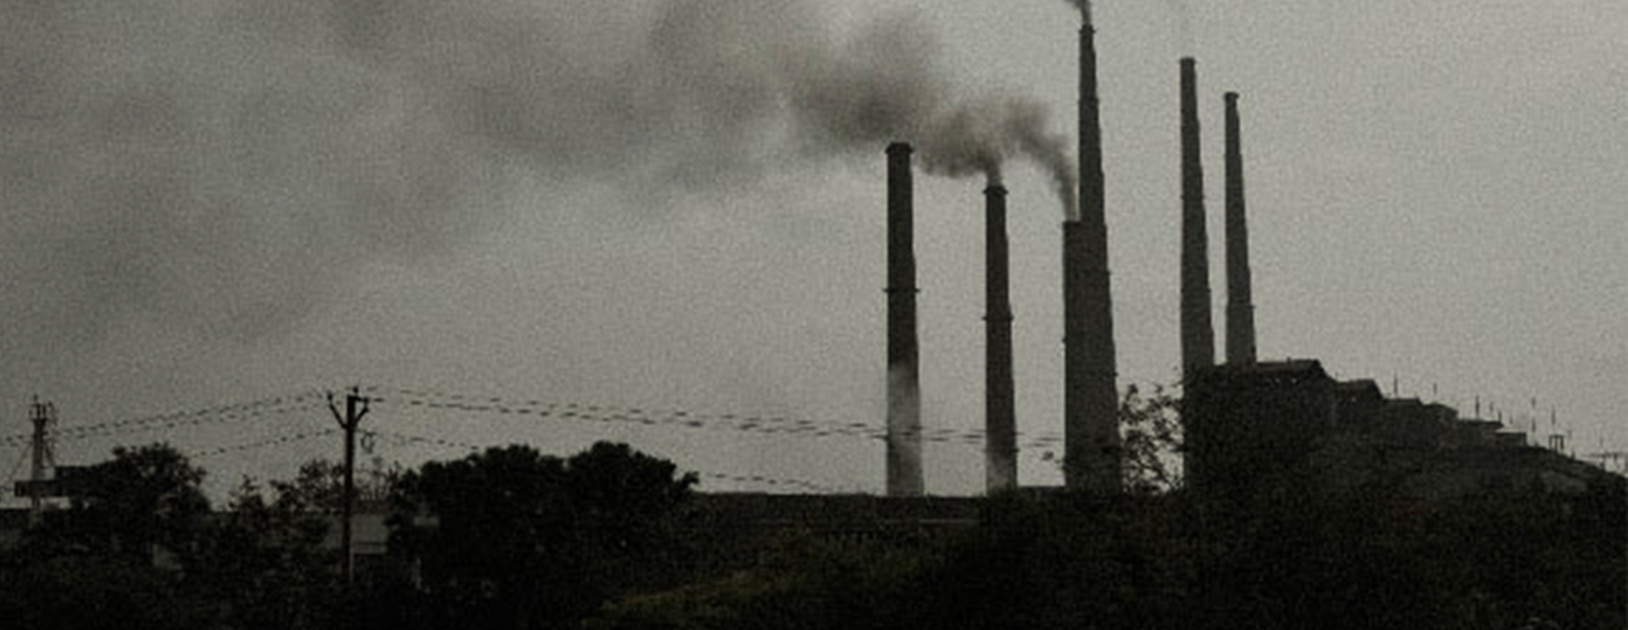 Air Pollution from Thermal Power Plants in India | Centre